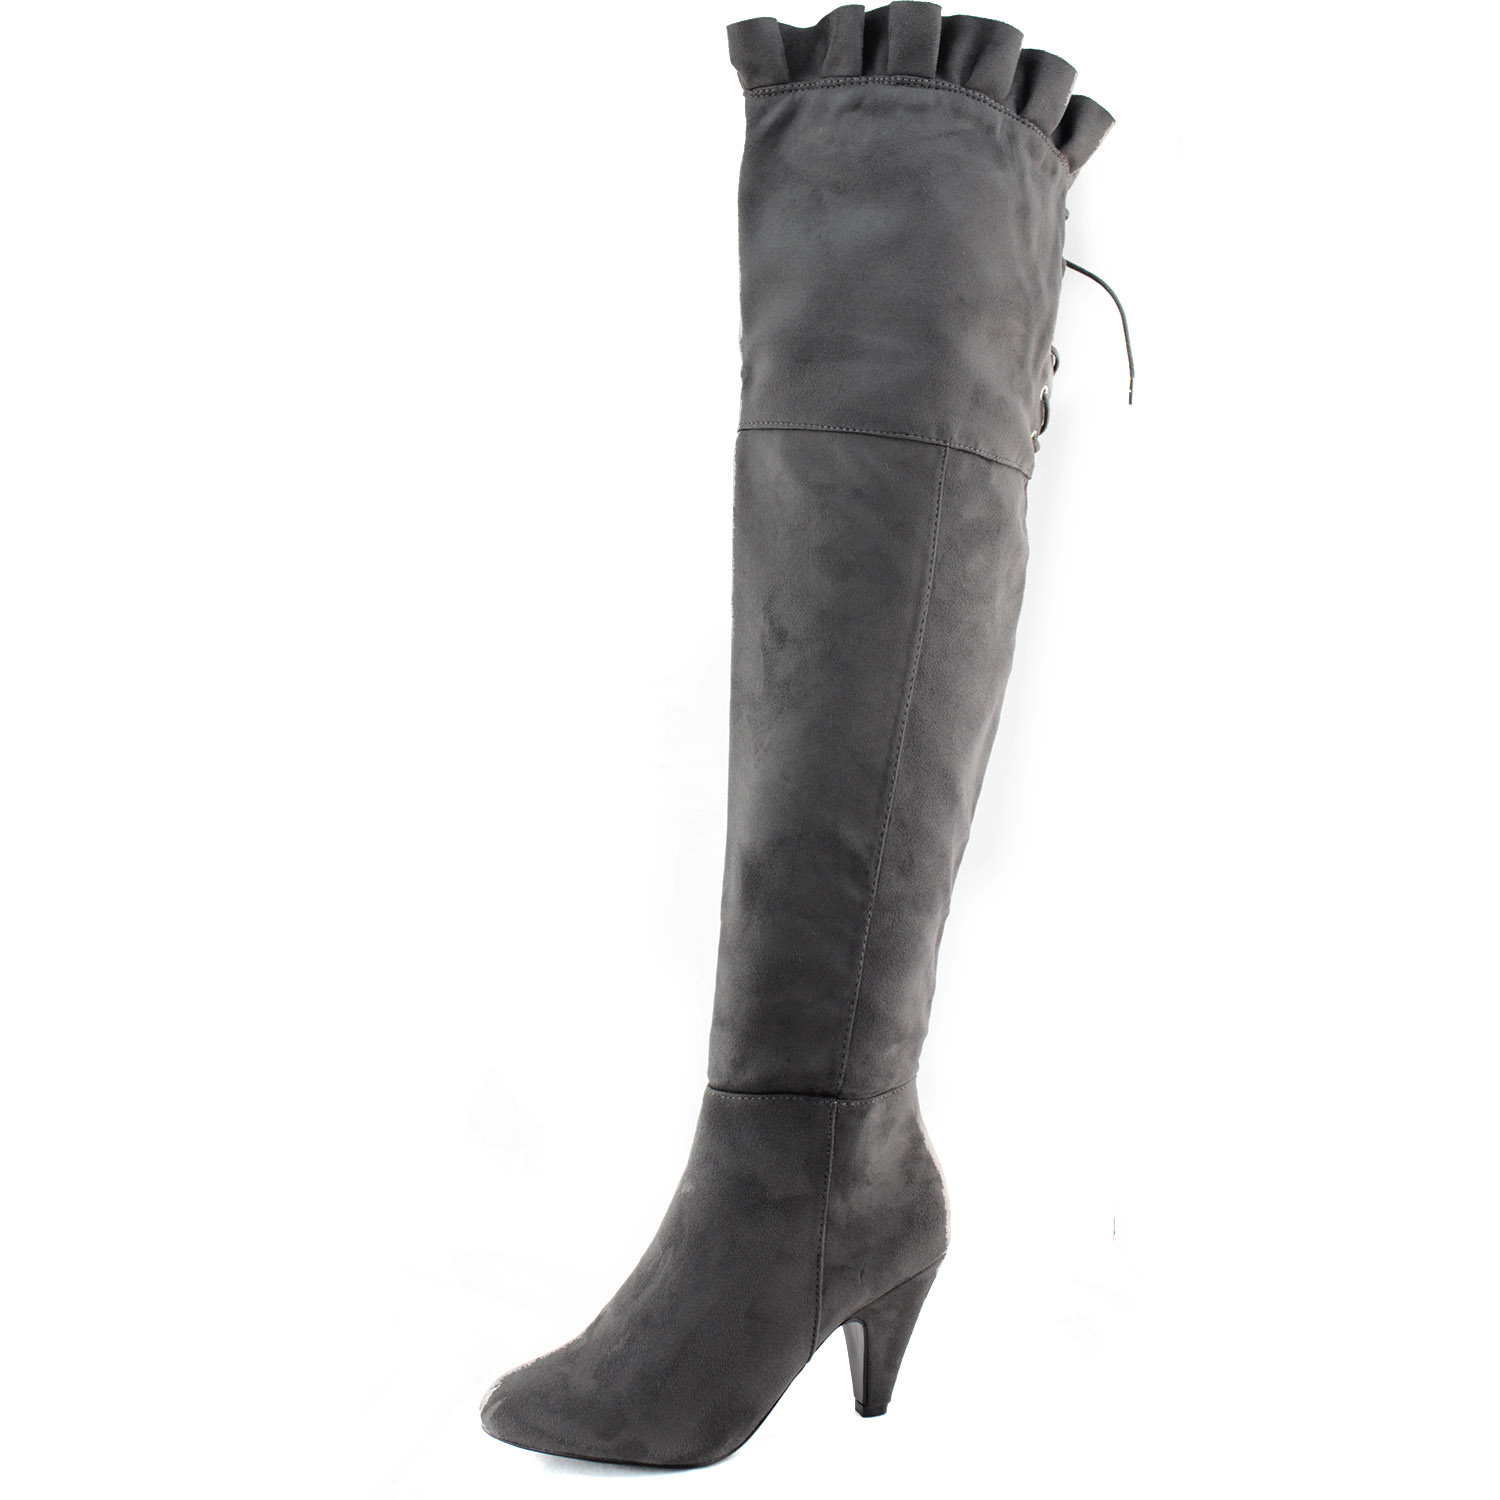 knee slouch casual mid calf thigh high heel